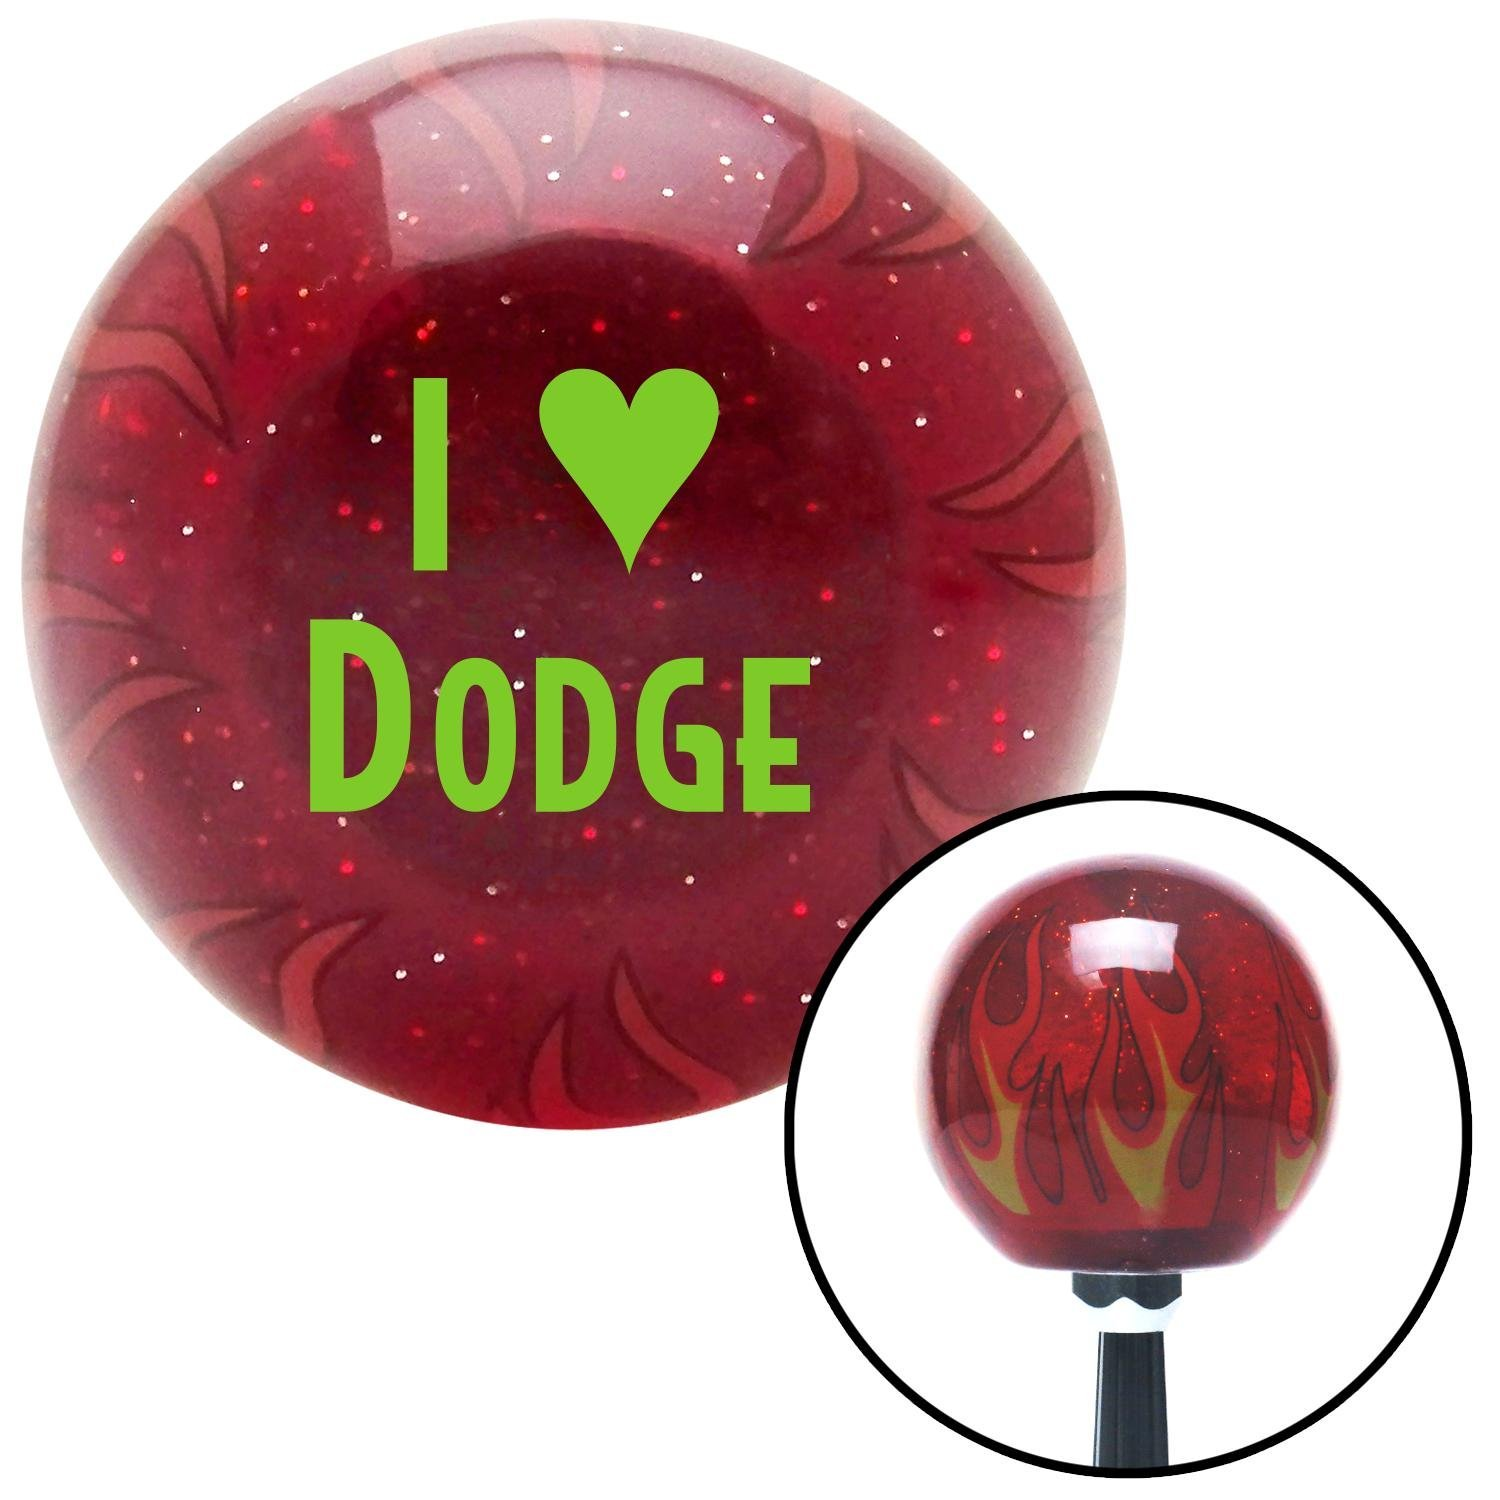 Green I 3 Dodge American Shifter 237315 Red Flame Metal Flake Shift Knob with M16 x 1.5 Insert